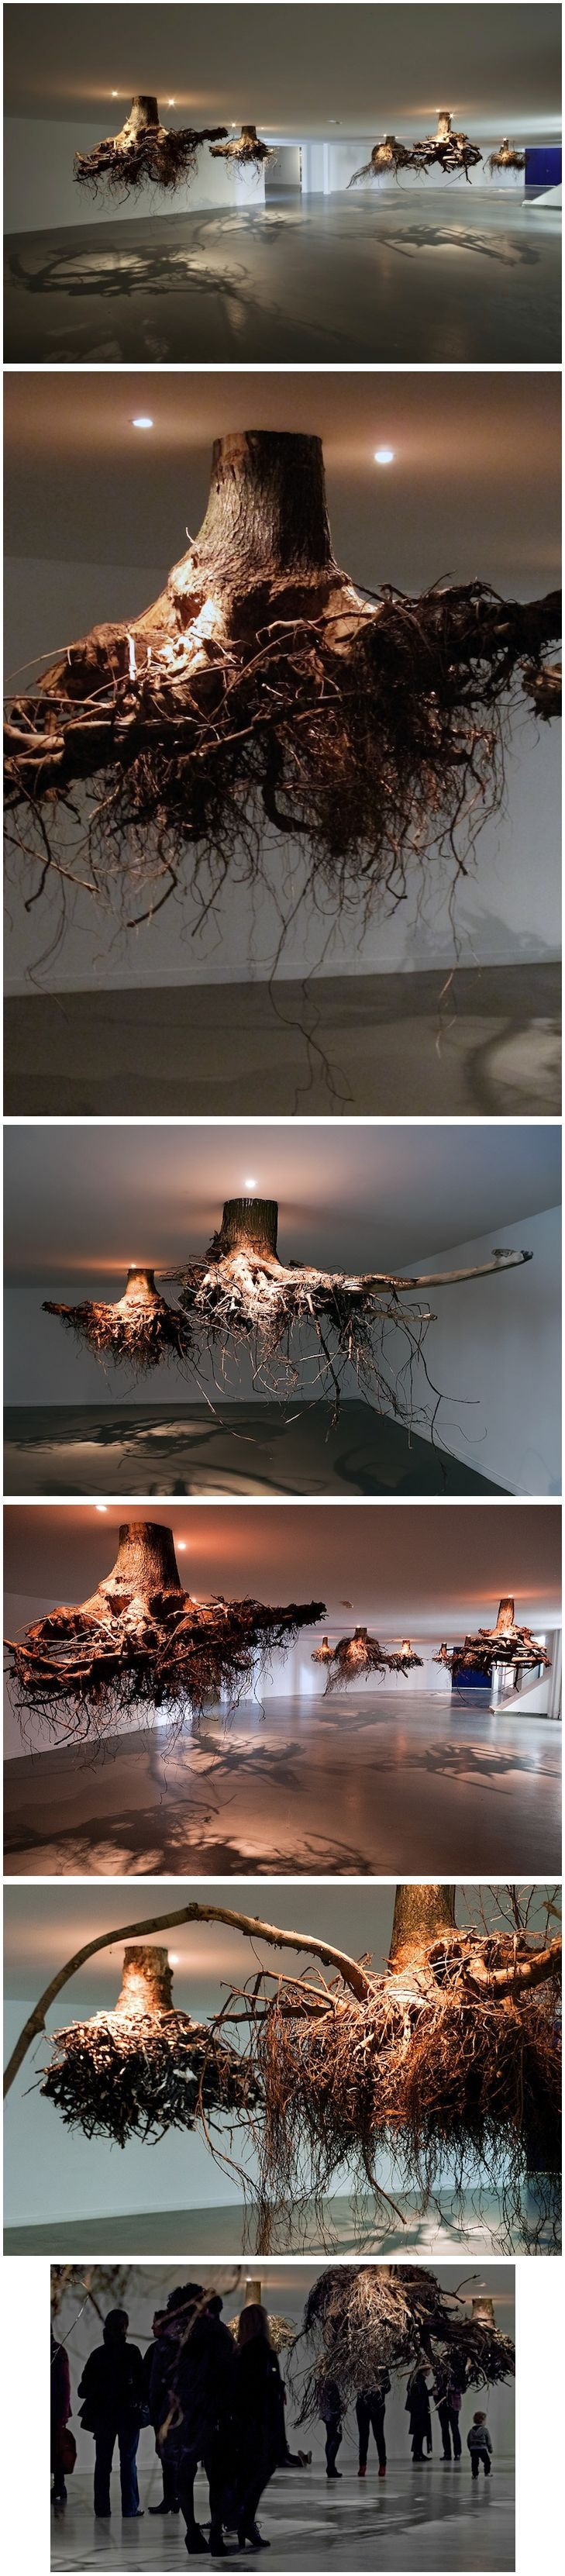 tree roots emerge from the ceiling in an installation by giuseppe licari #Art #TraditionallyUnconventional #Design